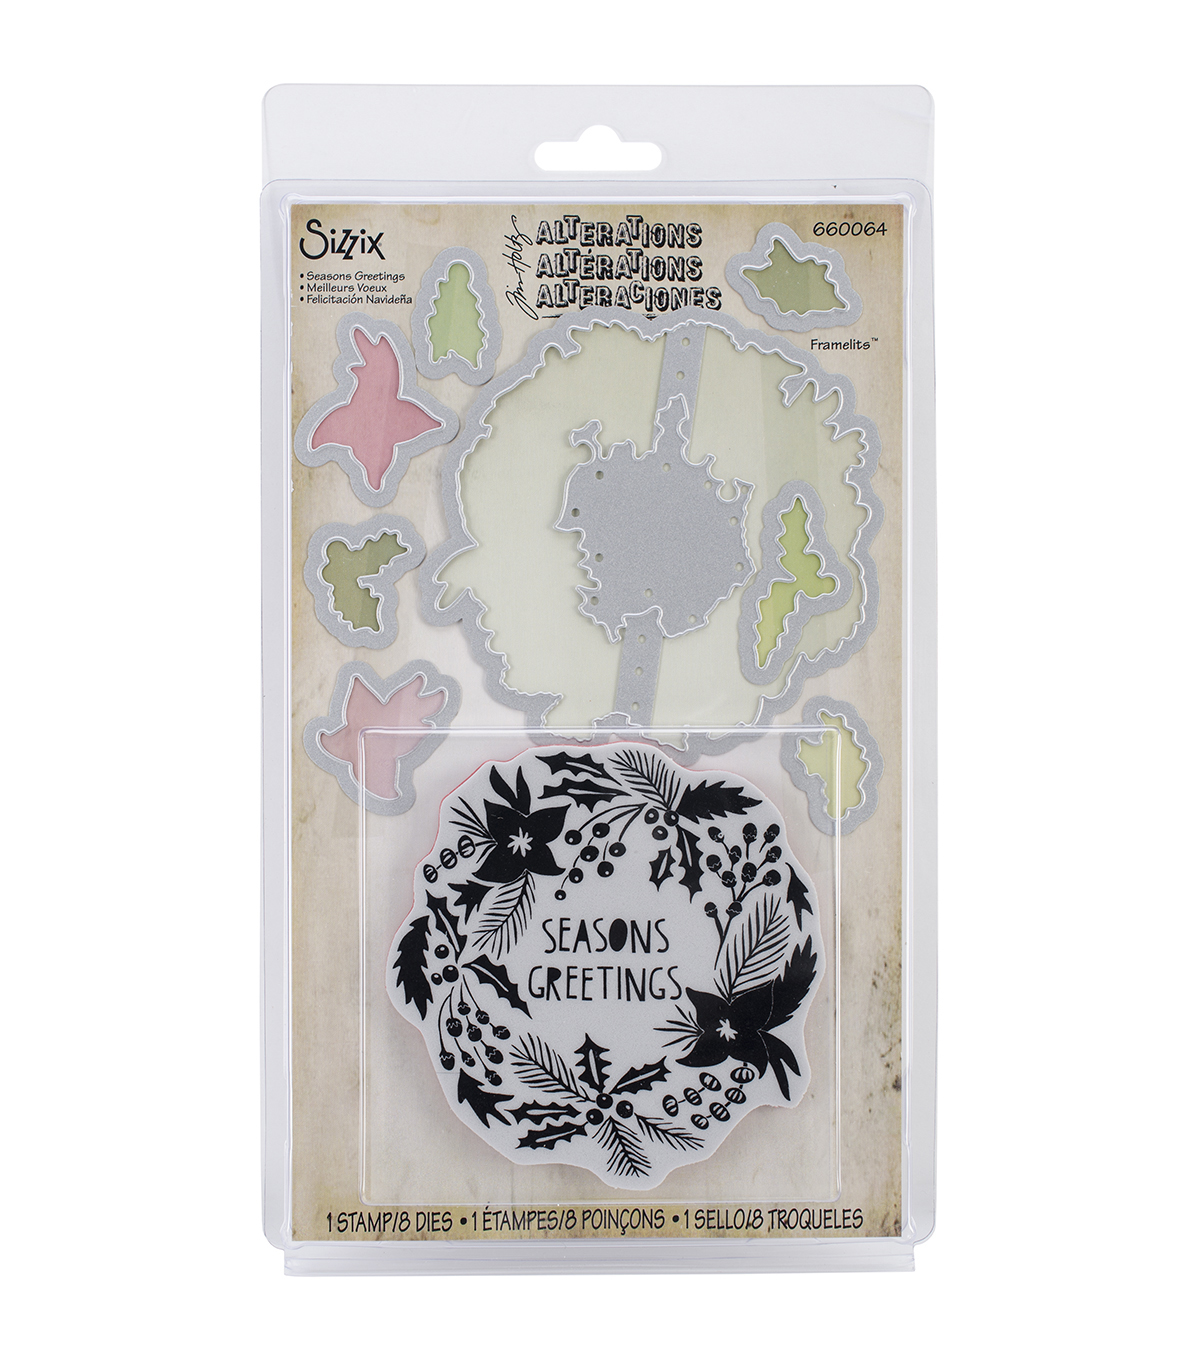 Sizzix Tim Holtz Seasons Greetings Framelits Dies With Cling Stamps